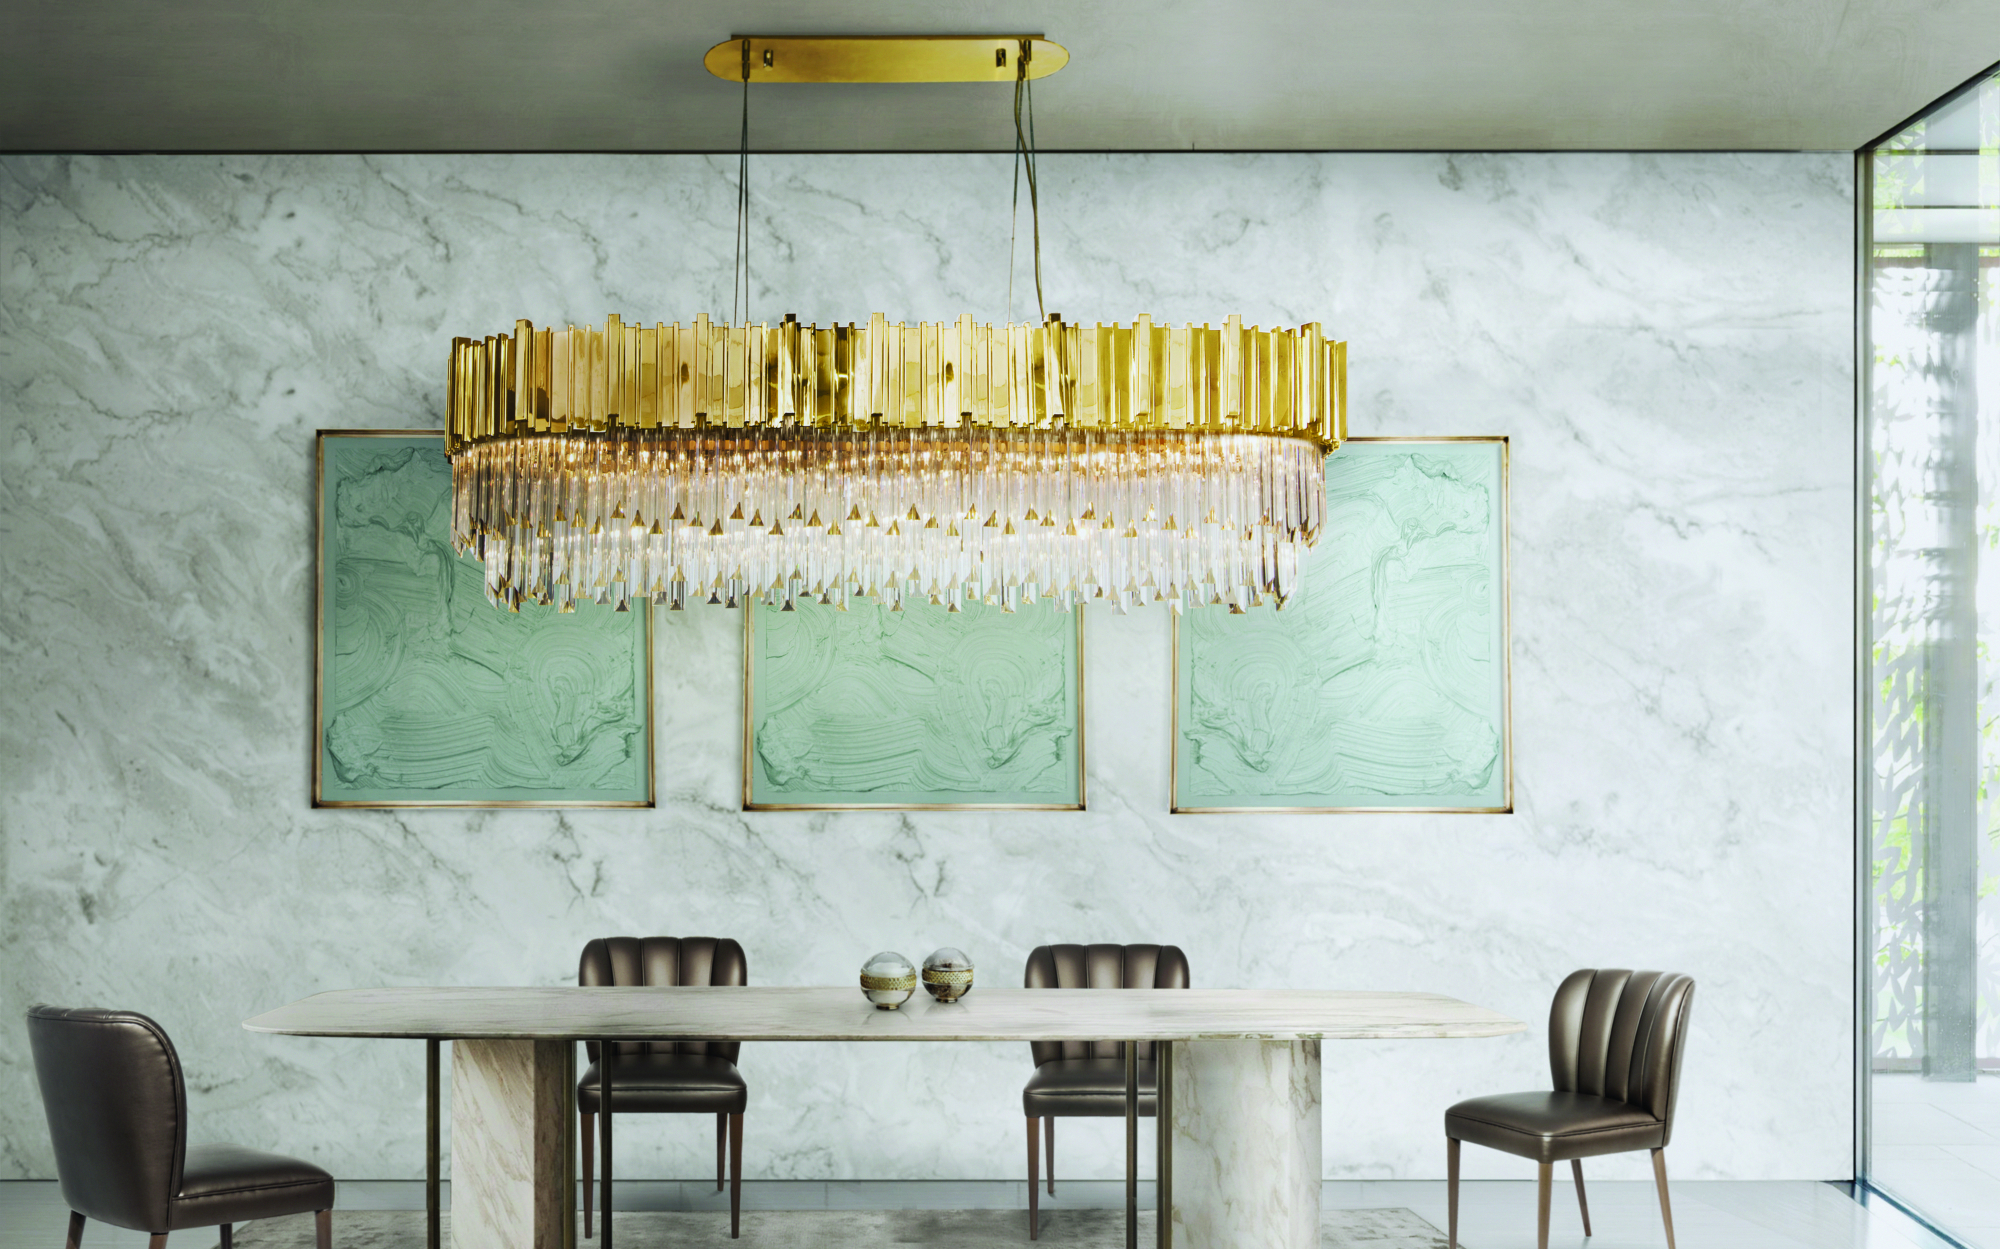 How to Place the perfect Dining Room Chandelier Viceroy Luxury hotels: Discovering Viceroy Hotel NYC How to Place the perfect Chandelier in your Dining Room 6 Viceroy Luxury hotels: Discovering Viceroy Hotel NYC How to Place the perfect Chandelier in your Dining Room 6